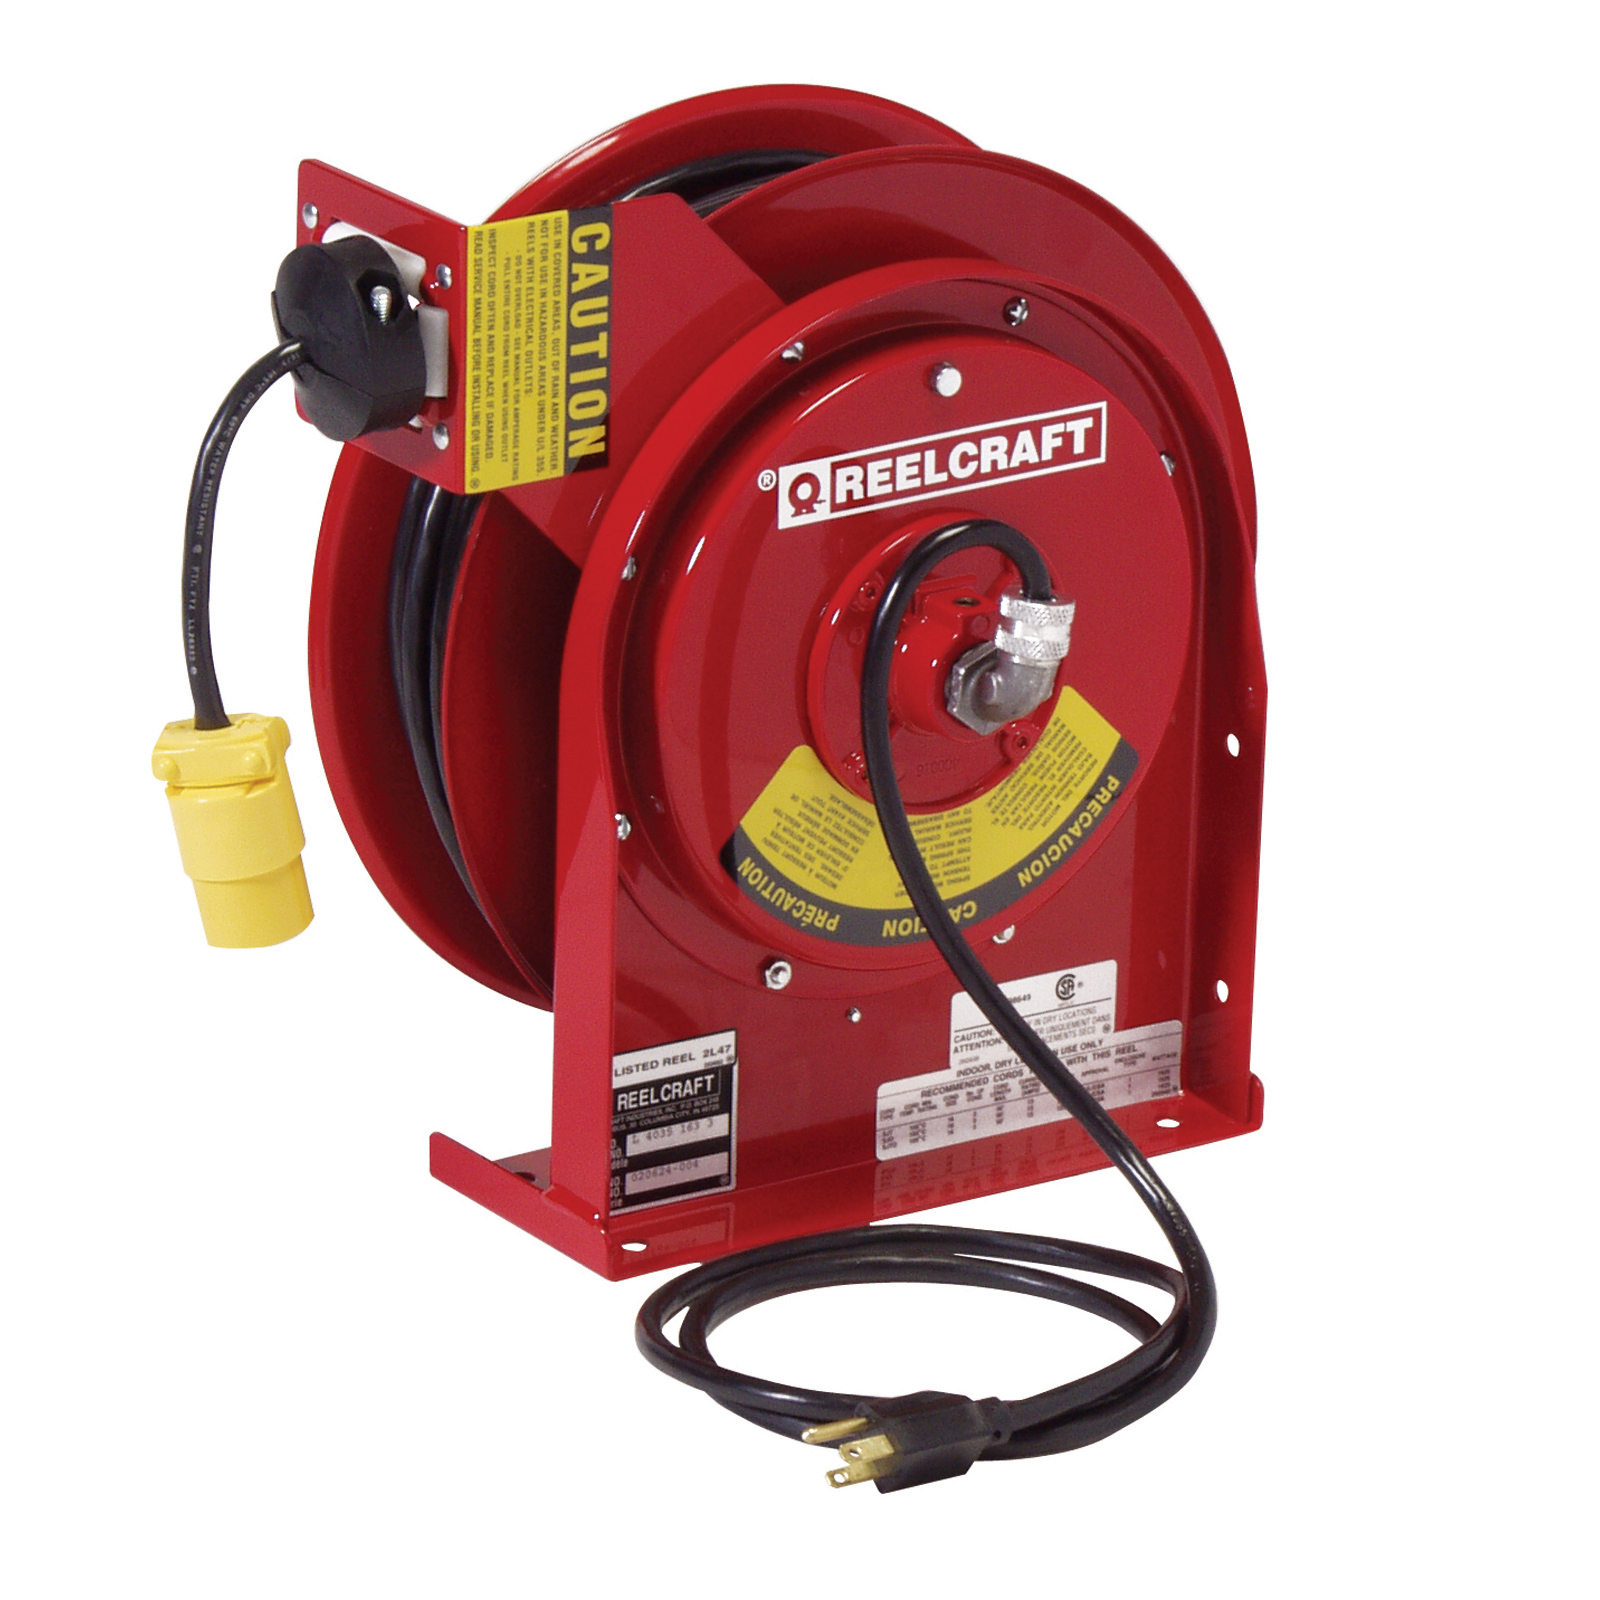 Reelcraft® L 4035 163 3 L 4000 Retractable Power Cord Reel With SJTOW Cord, 125 VAC, 13 A, 35 ft L Cord, 16 AWG Conductor, 1 Outlets